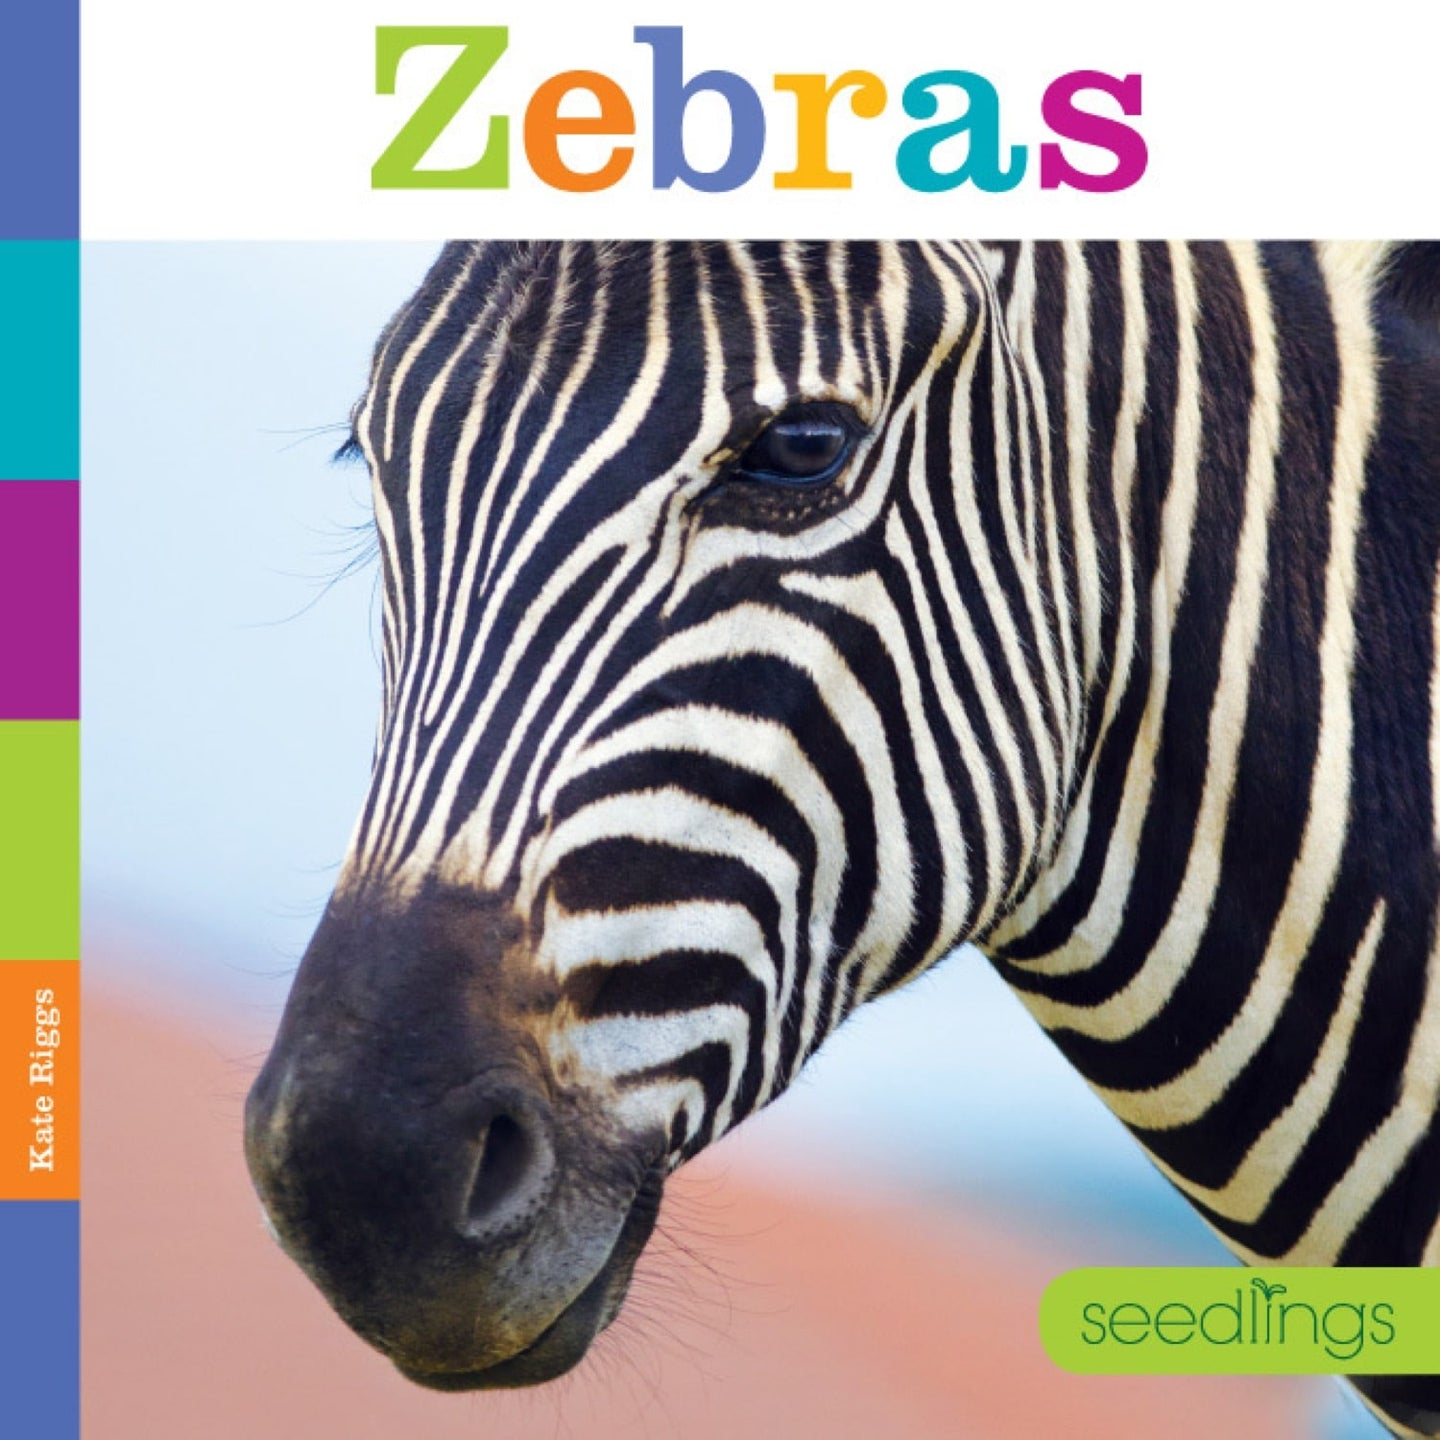 Seedlings: Zebras